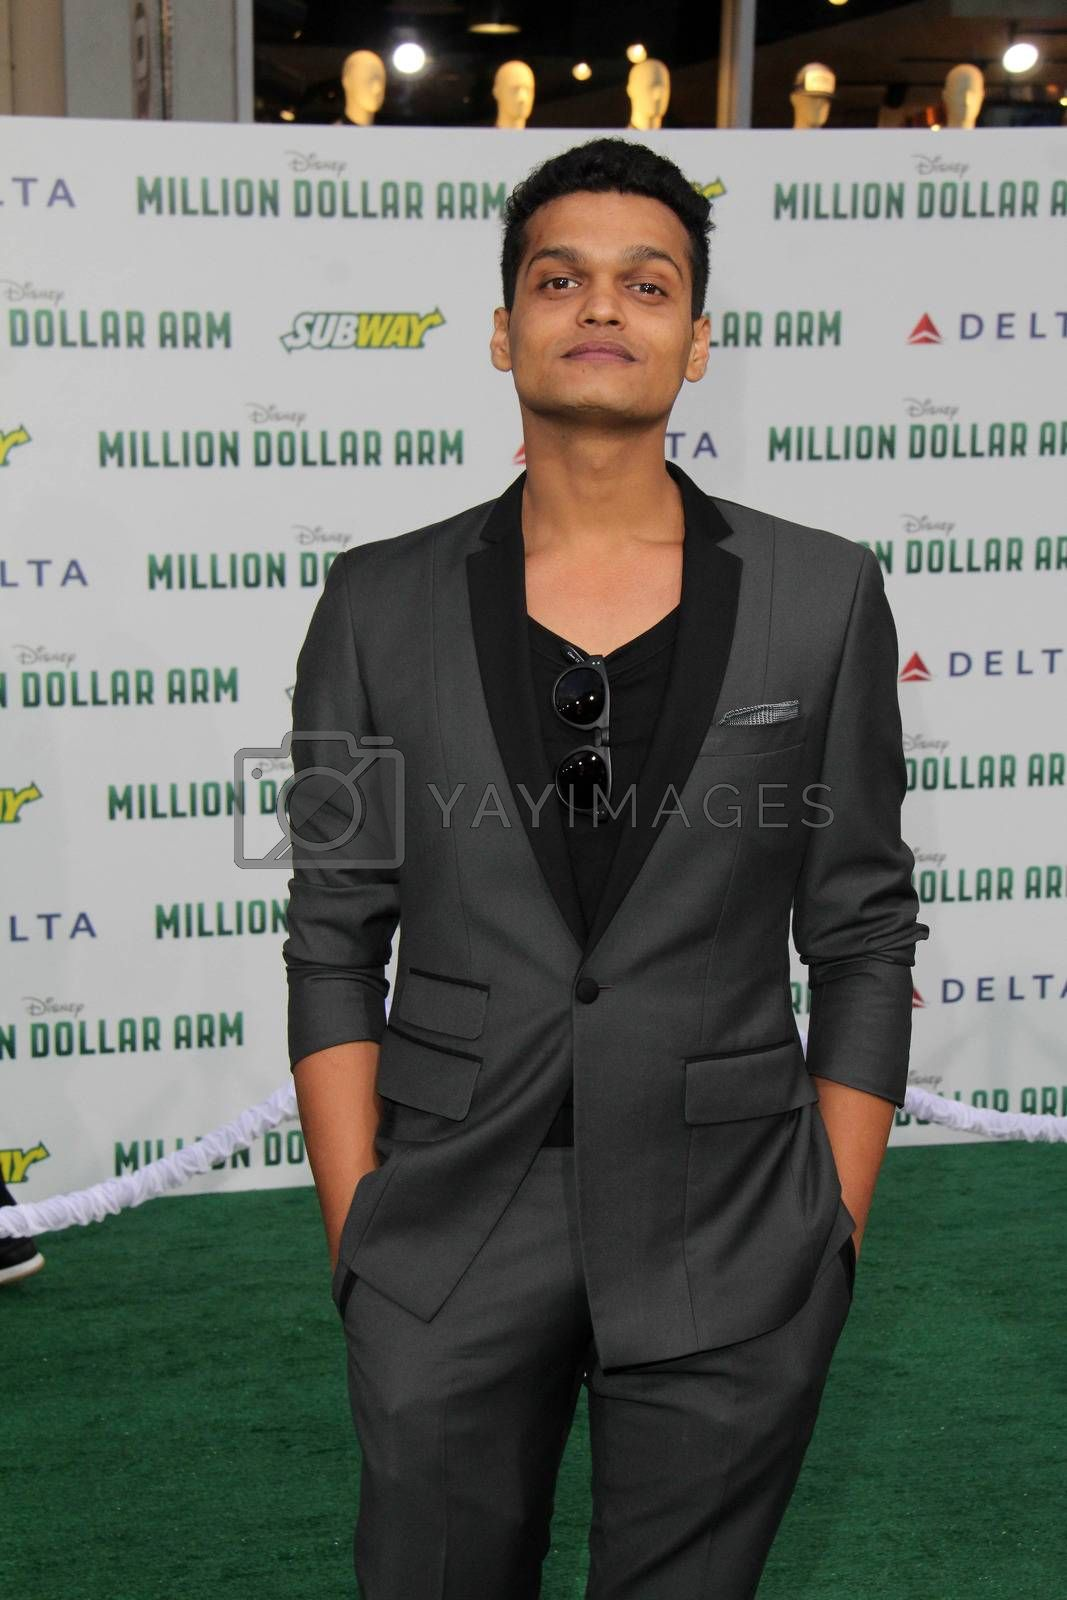 """Royalty free image of Madhur Mittal at the """"Million Dollar Arm"""" World Premiere, El Capitan, Hollywood, CA 05-06-14/ImageCollect by ImageCollect"""